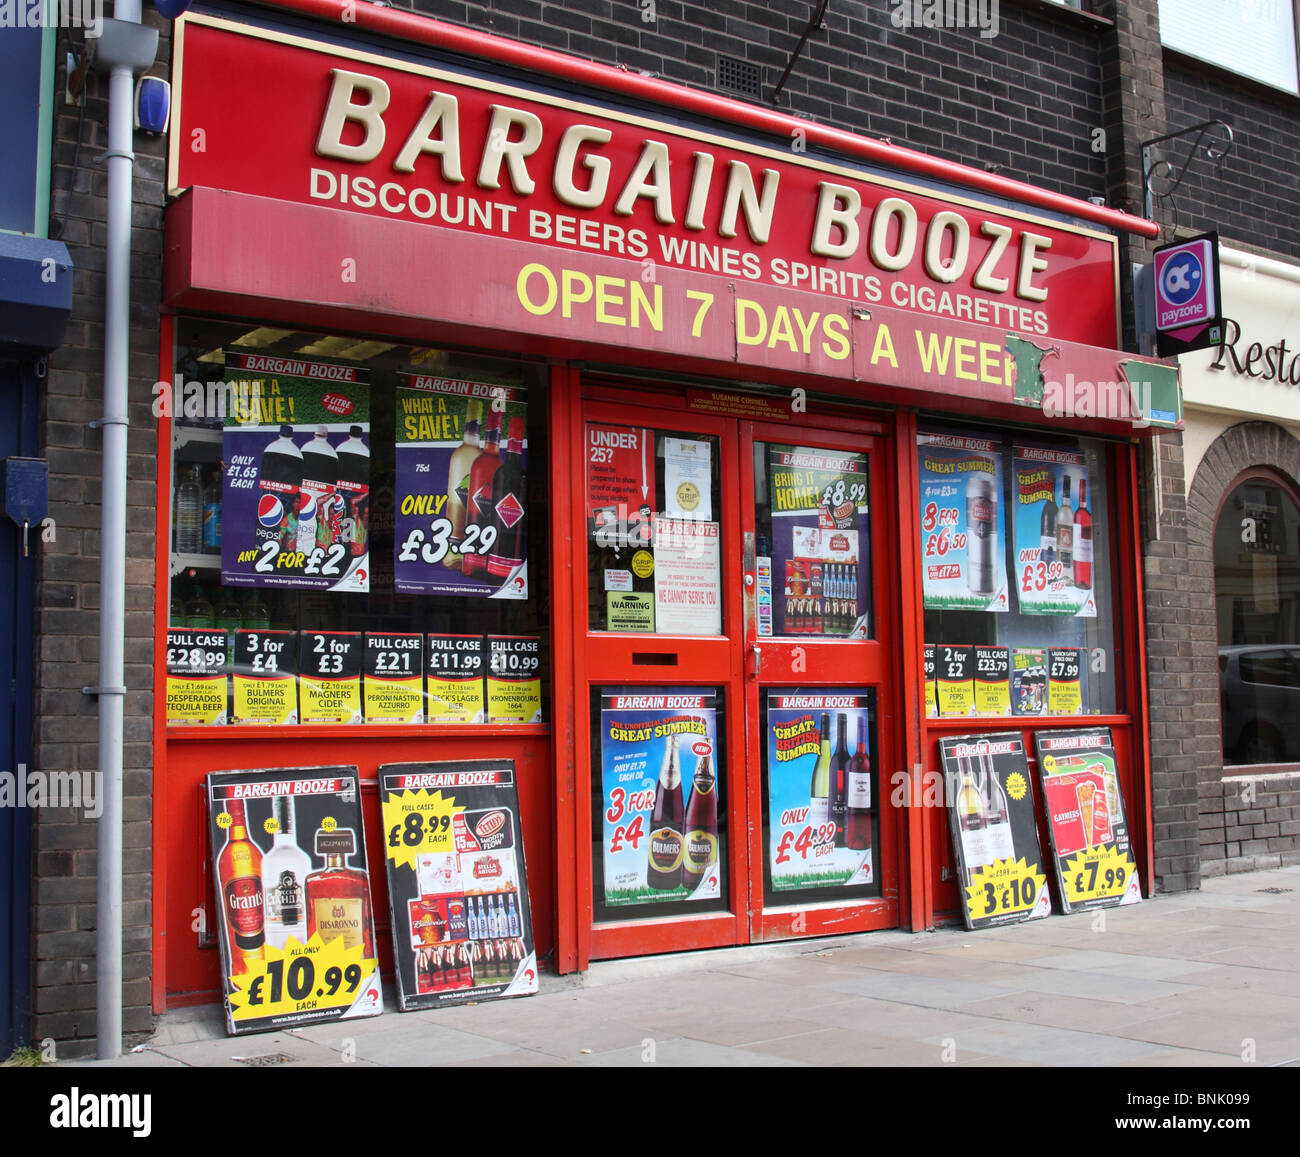 A Bargain Booze Store In UK Town